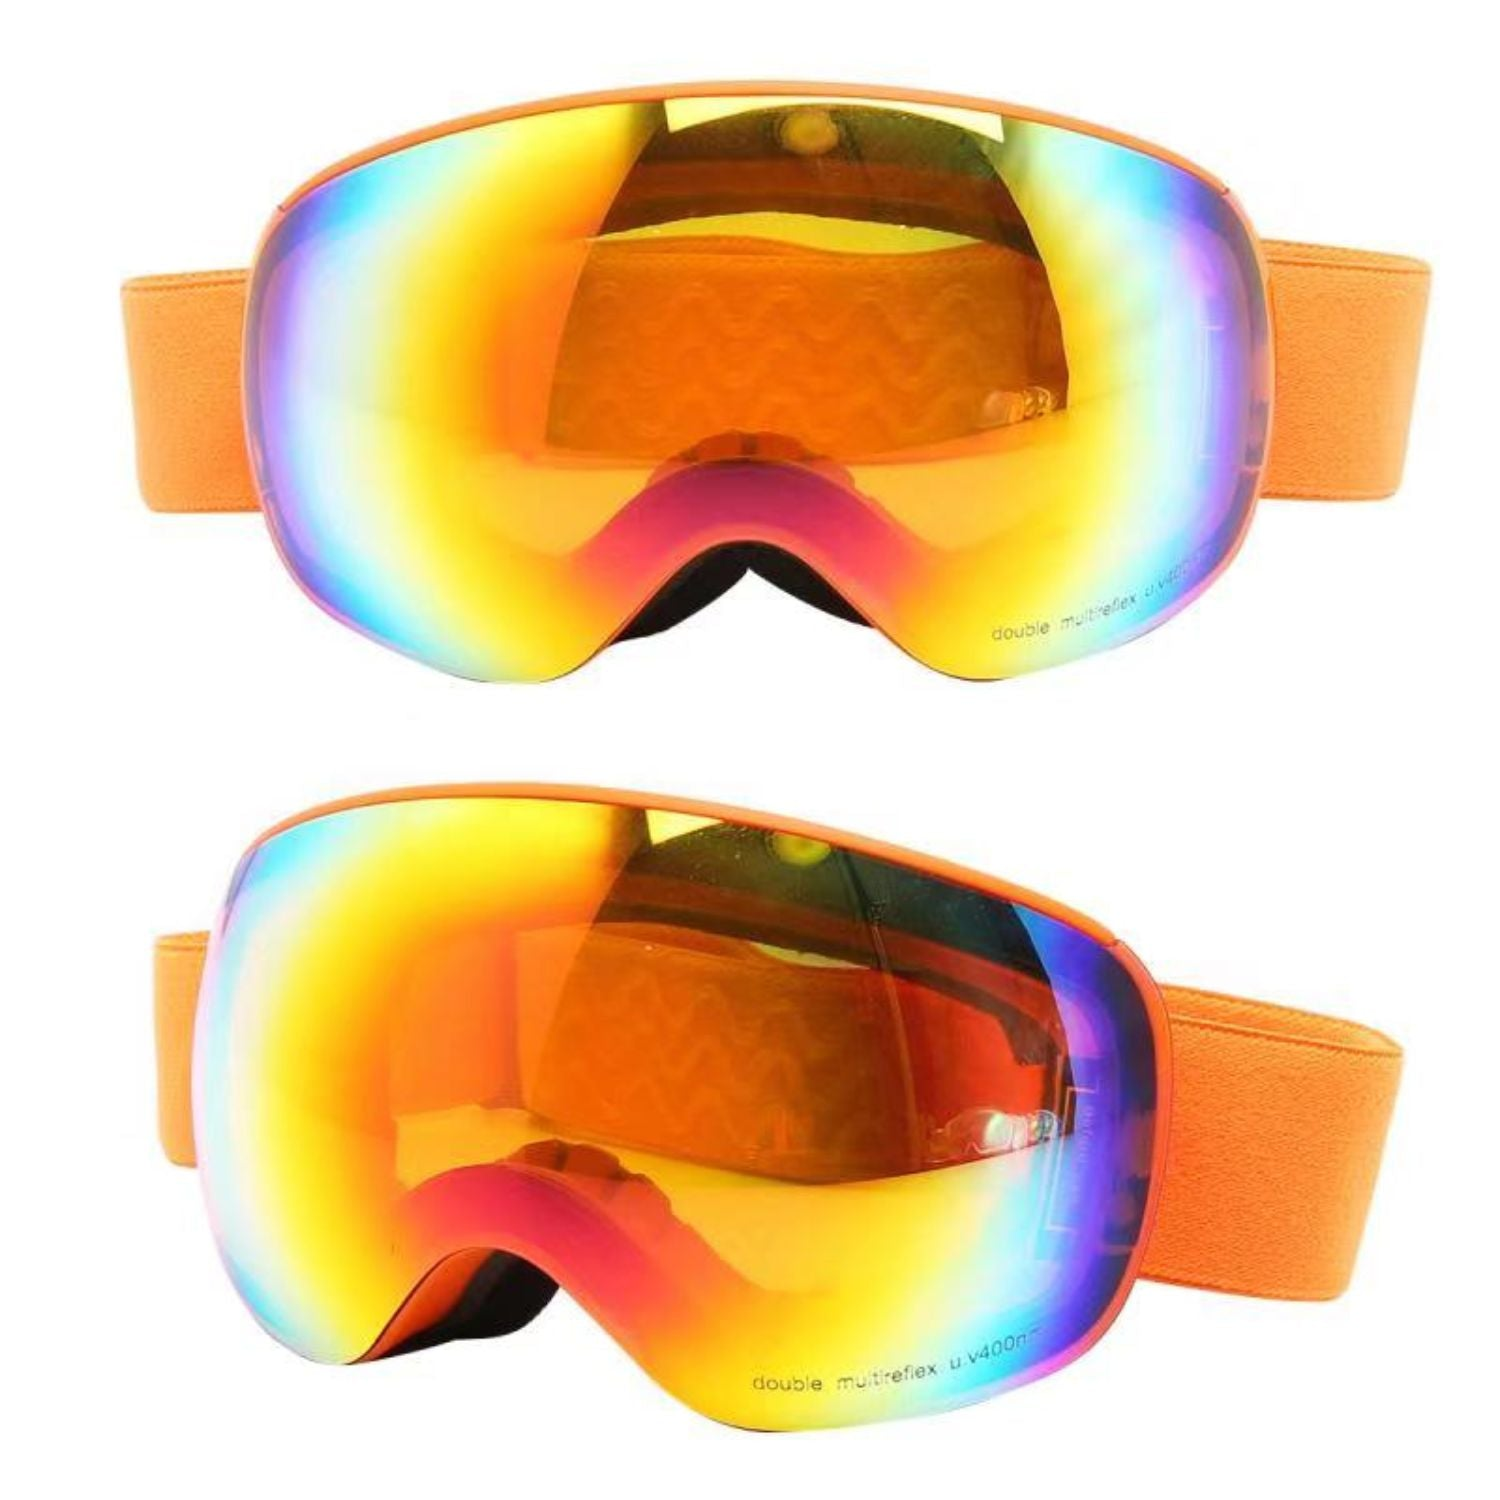 SG06 - Outdoor Ski Snowboard UV Protection Goggles - Iris Fashion Inc. | Wholesale Sunglasses and Glasses